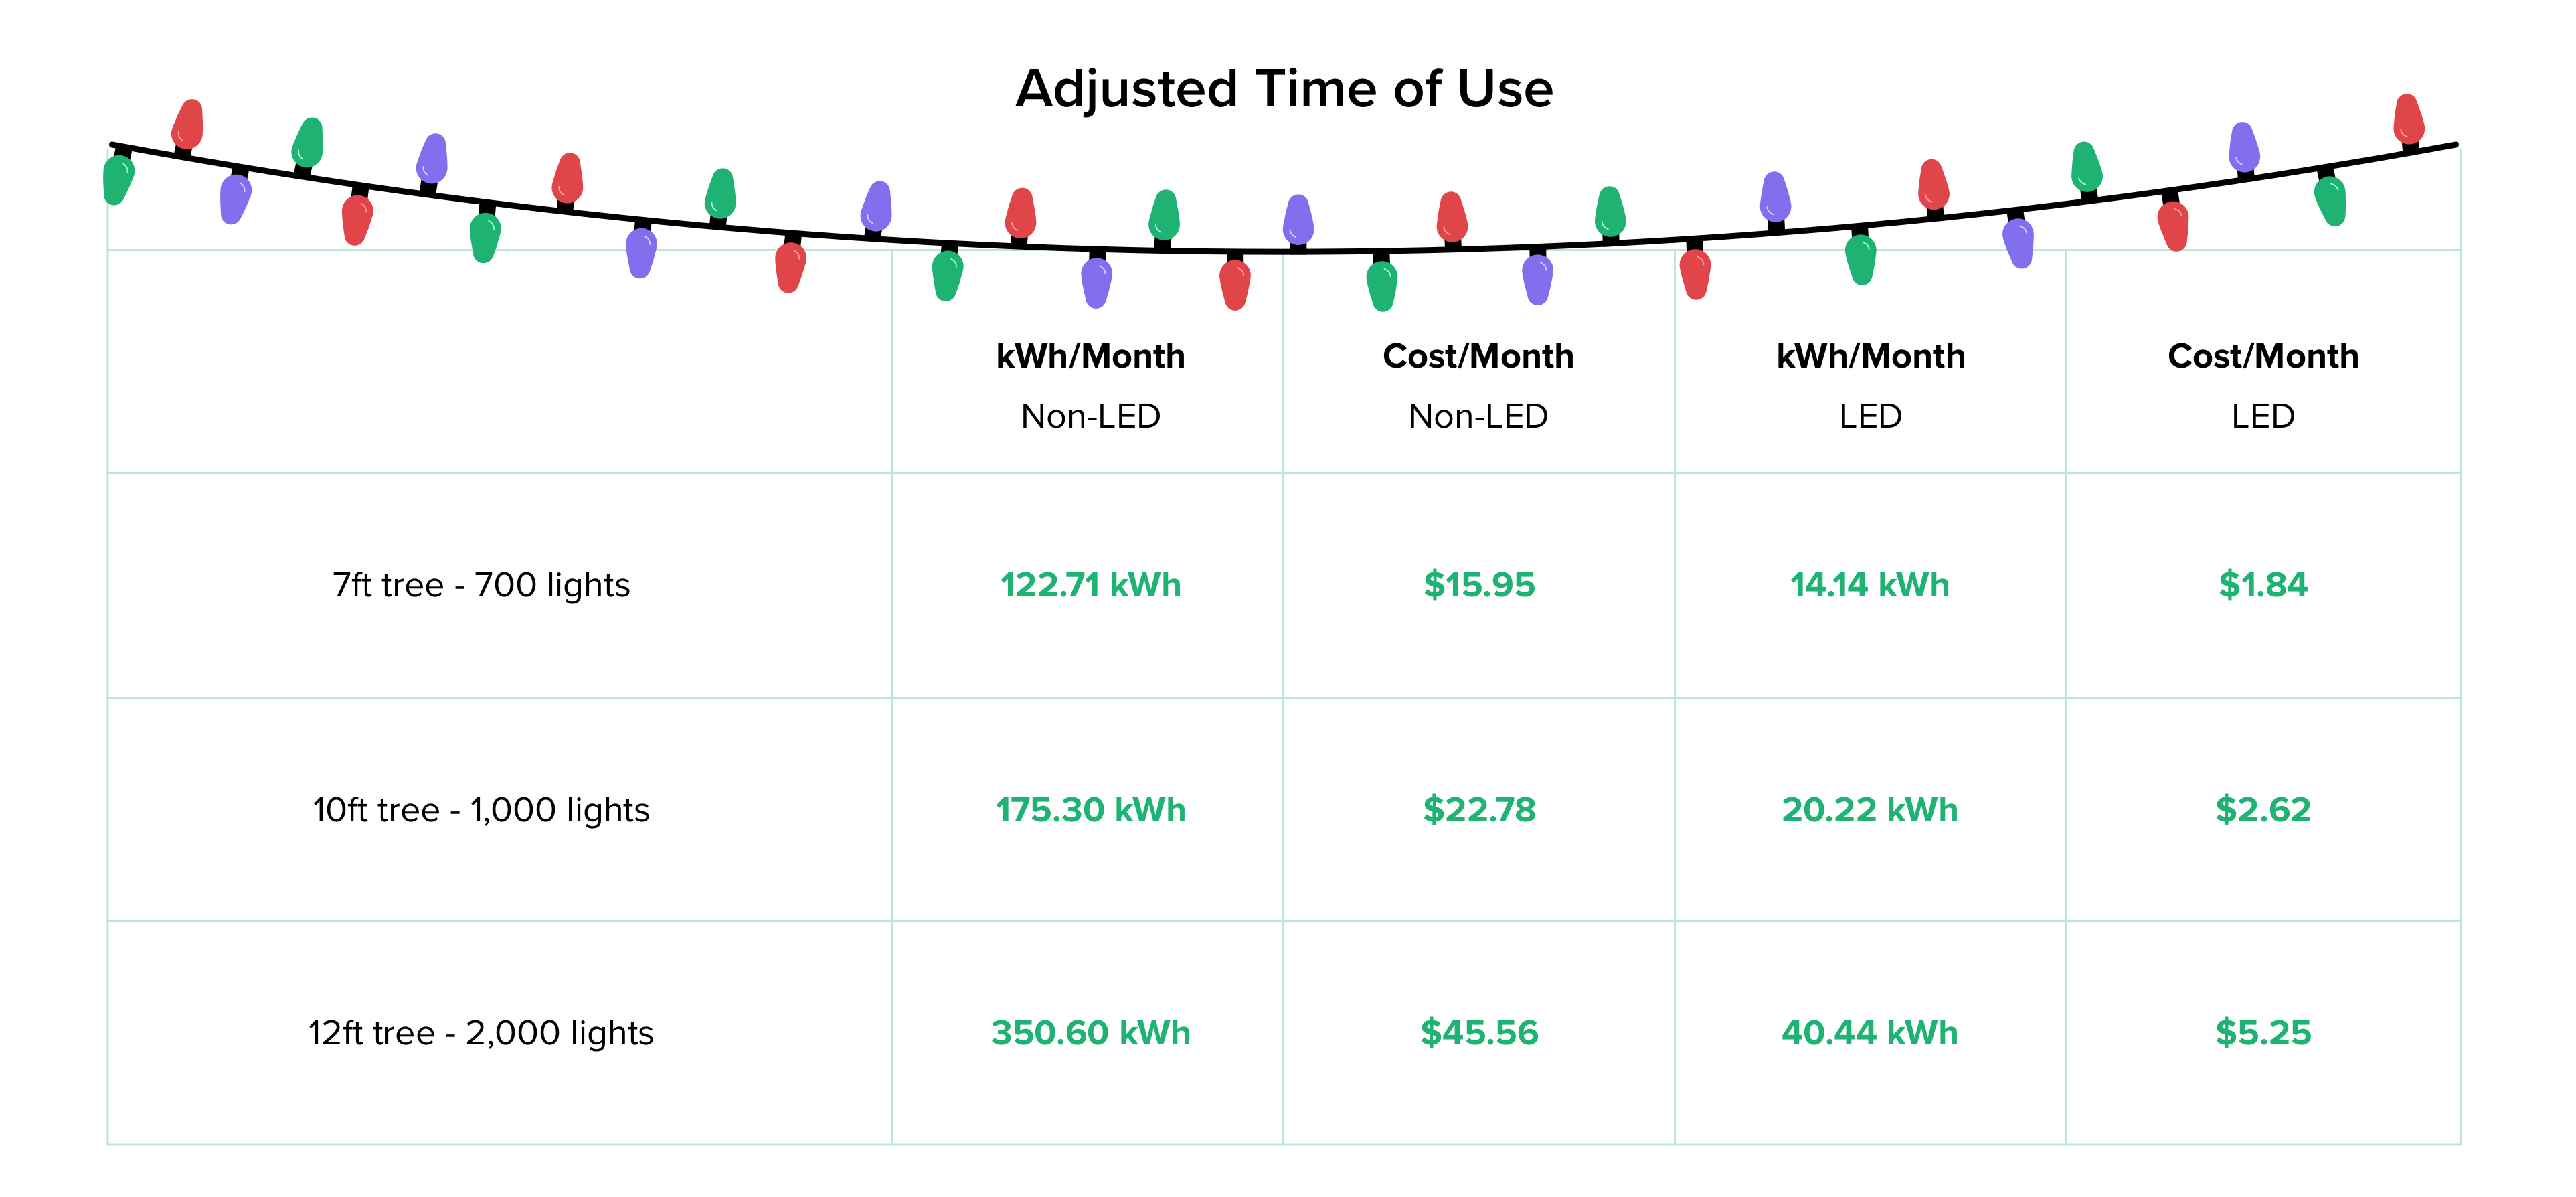 Mythbuster, Cost of Christmas lights, energy efficiency, home energy management